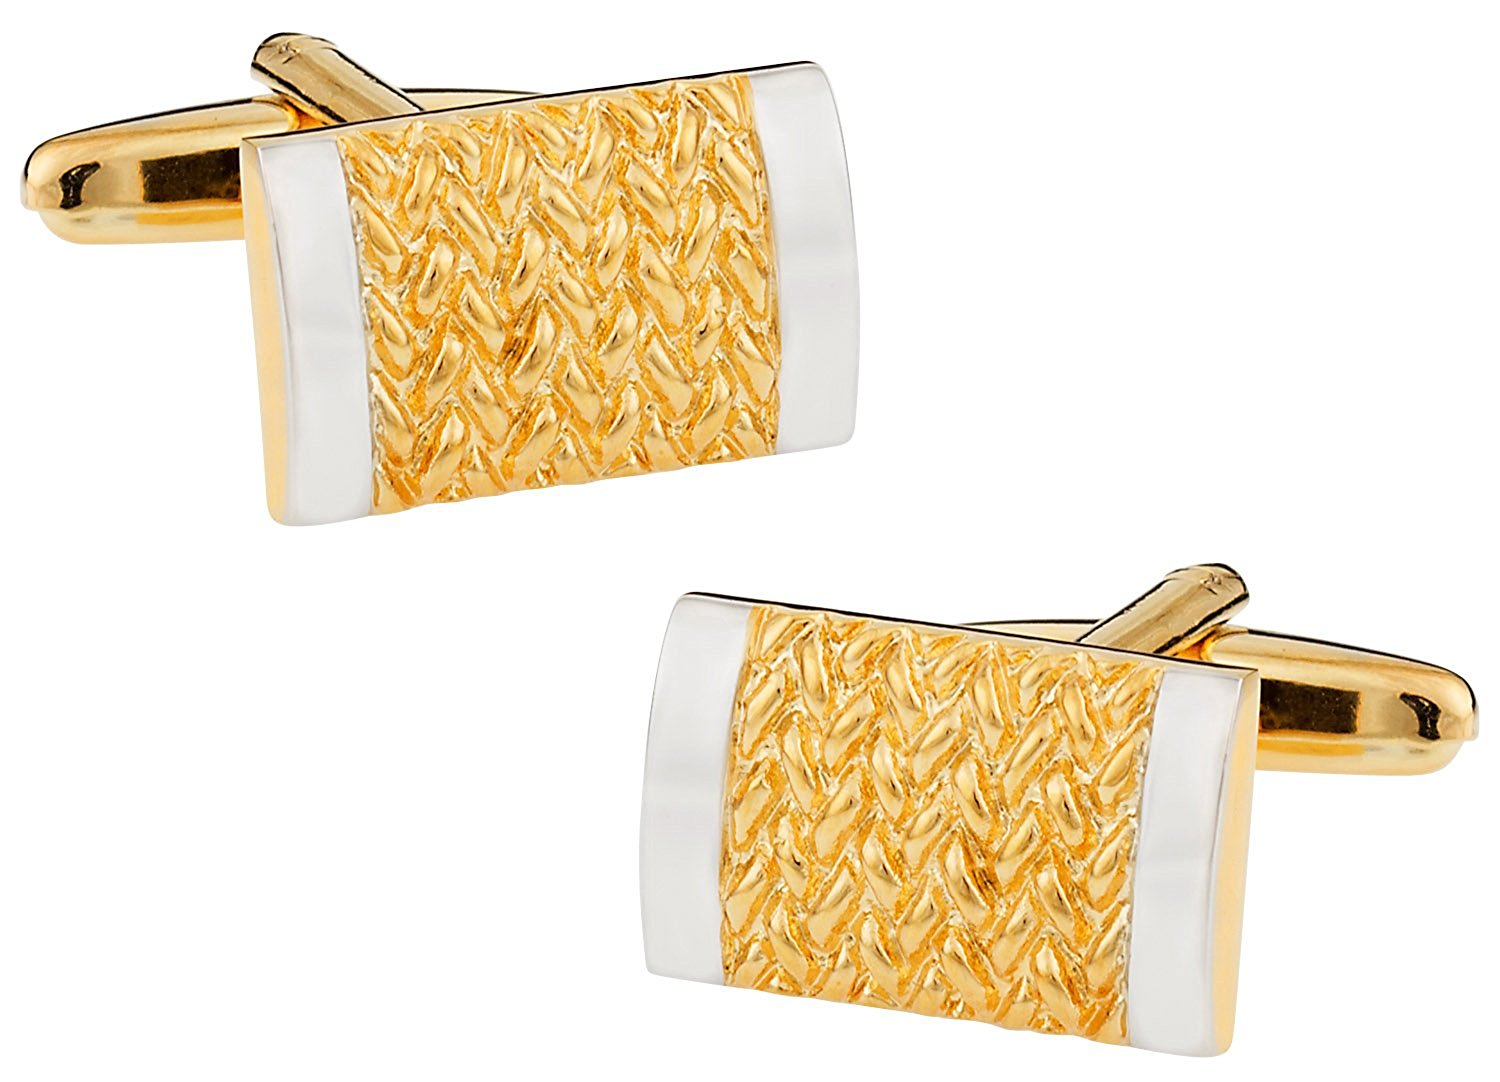 Cuff-Daddy Rich Two-Tone Gold and Silver Cufflinks with Presentation Box